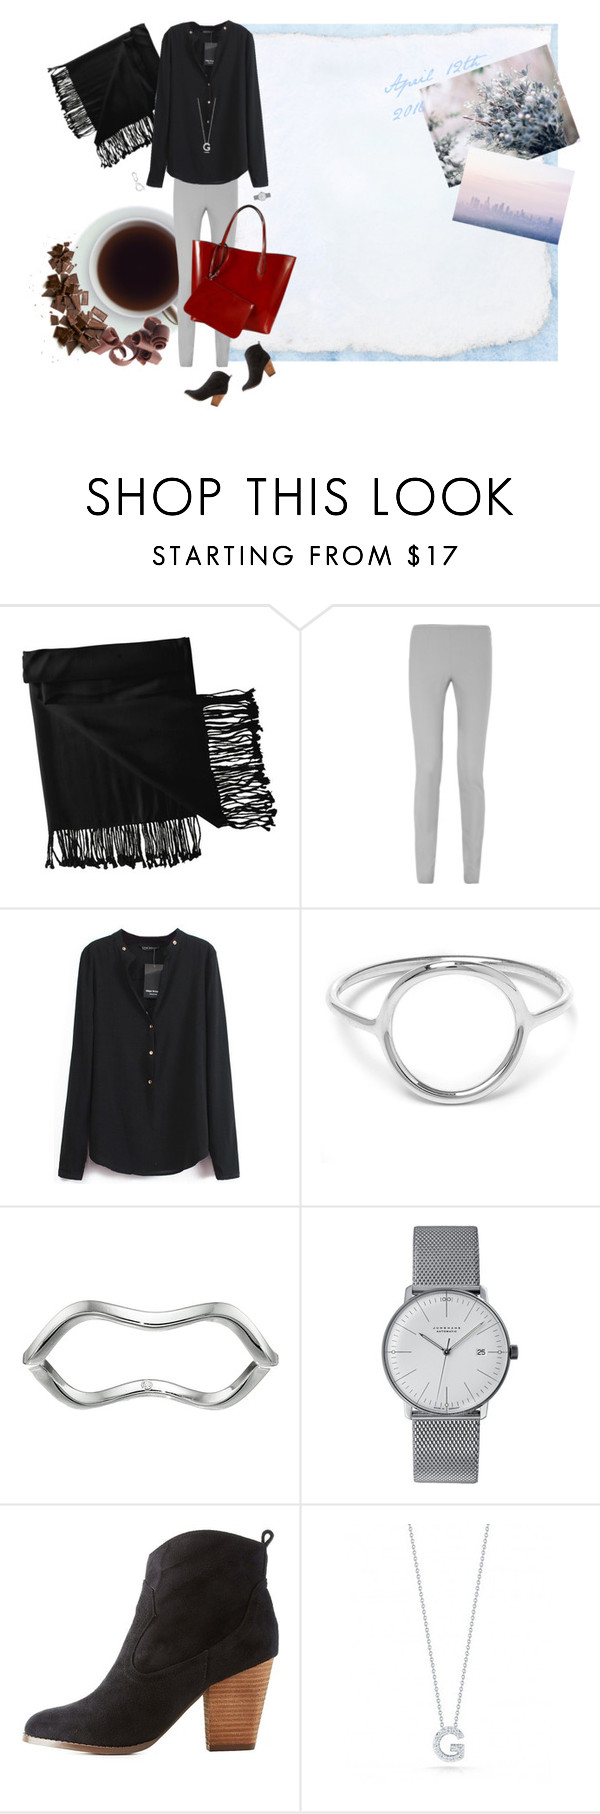 """""""20160412"""" by kakarichoh on Polyvore featuring ファッション, New Directions, Missoni, Maria Black, Gorjana, Junghans, Charlotte Russe と Roberto Coin"""